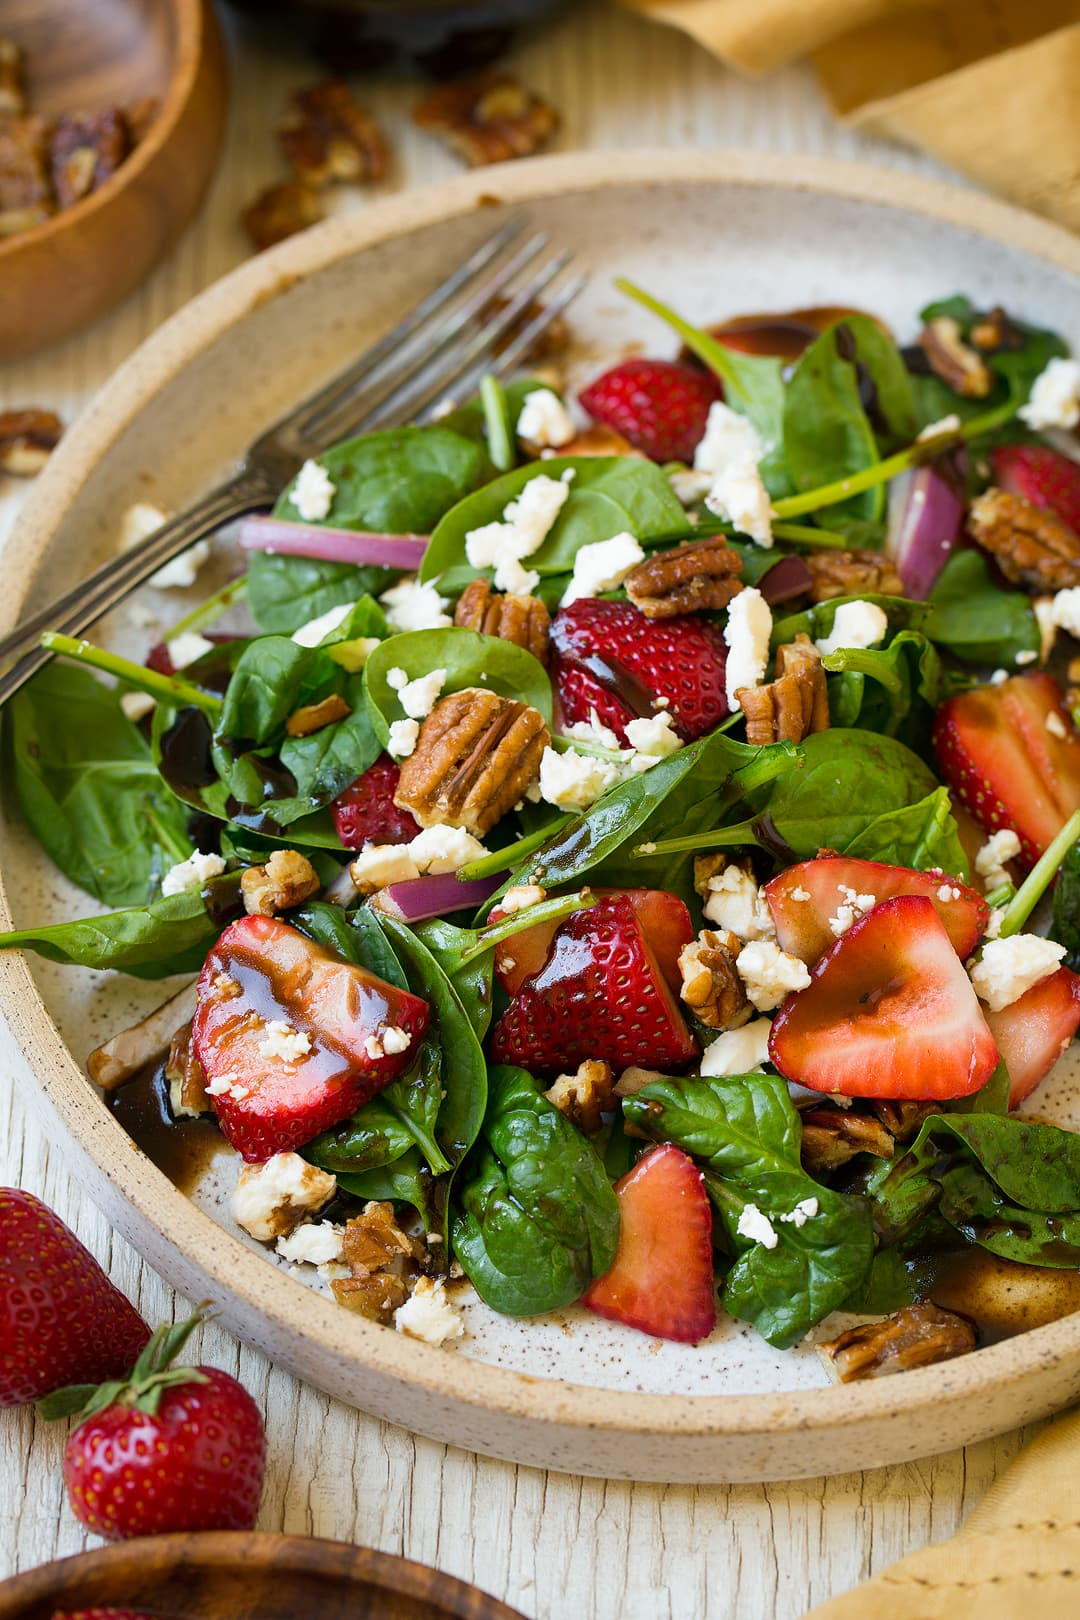 A Strawberry Spinach Salad in a bowl with a fork